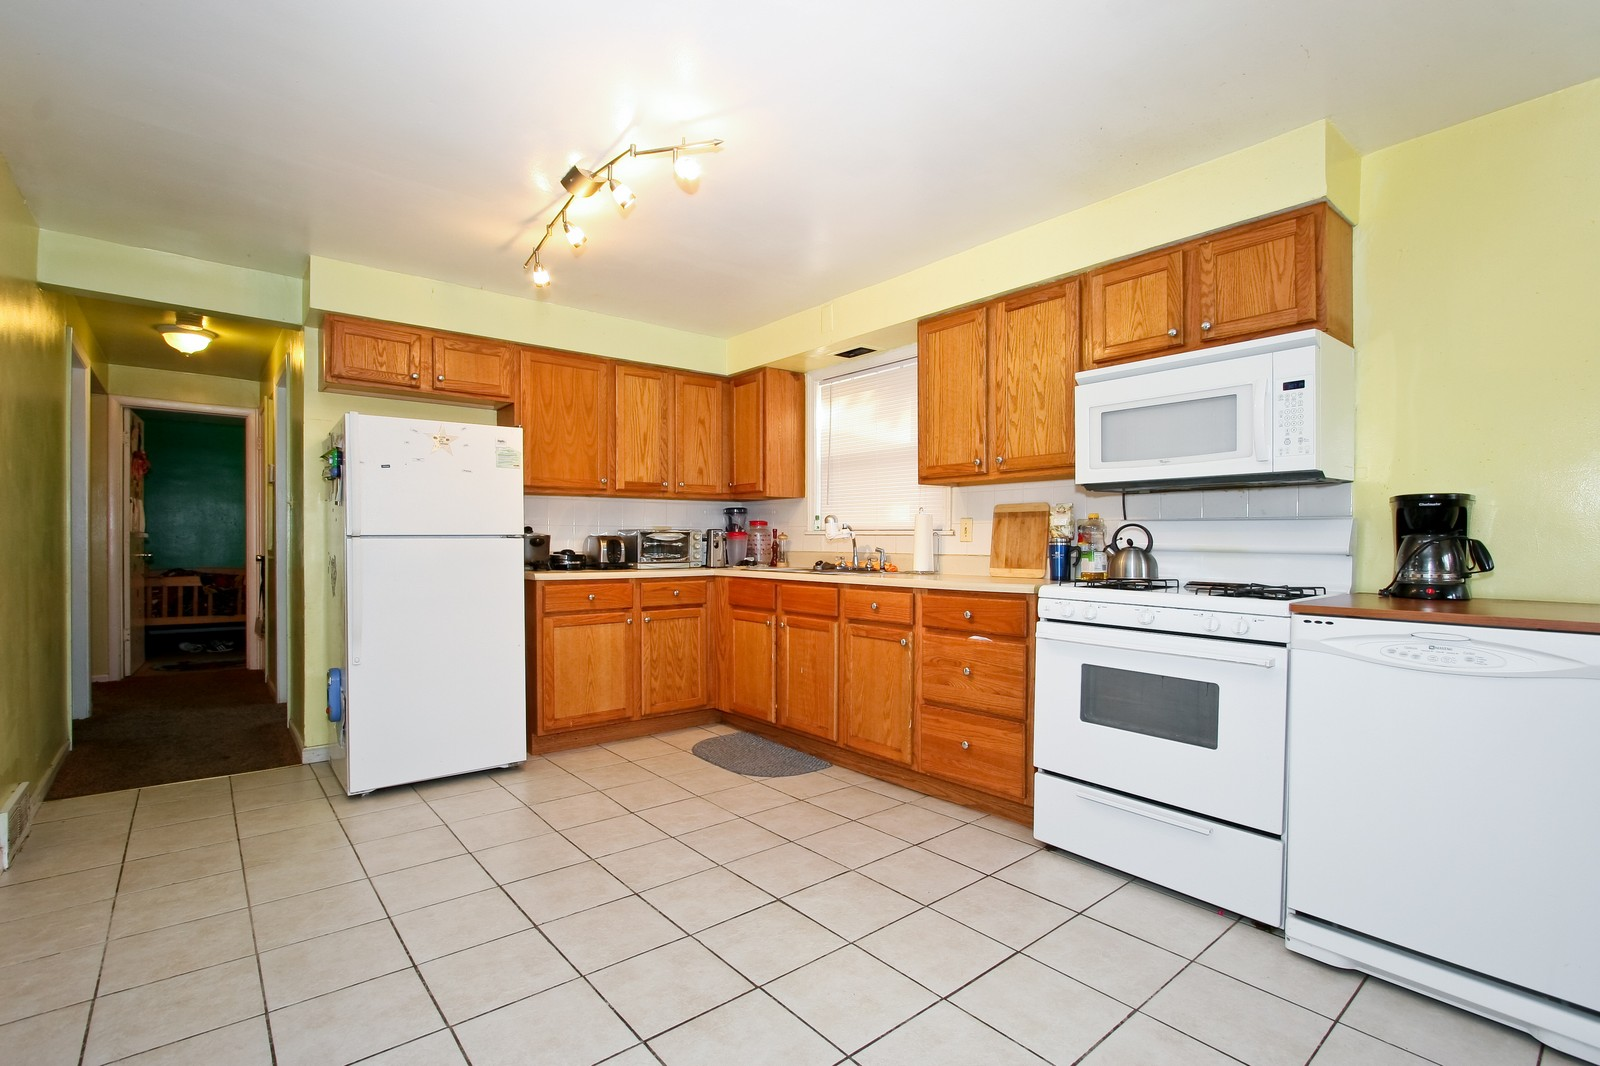 Real Estate Photography - 12462 S Wabash, Chicago, IL, 60620 - Kitchen